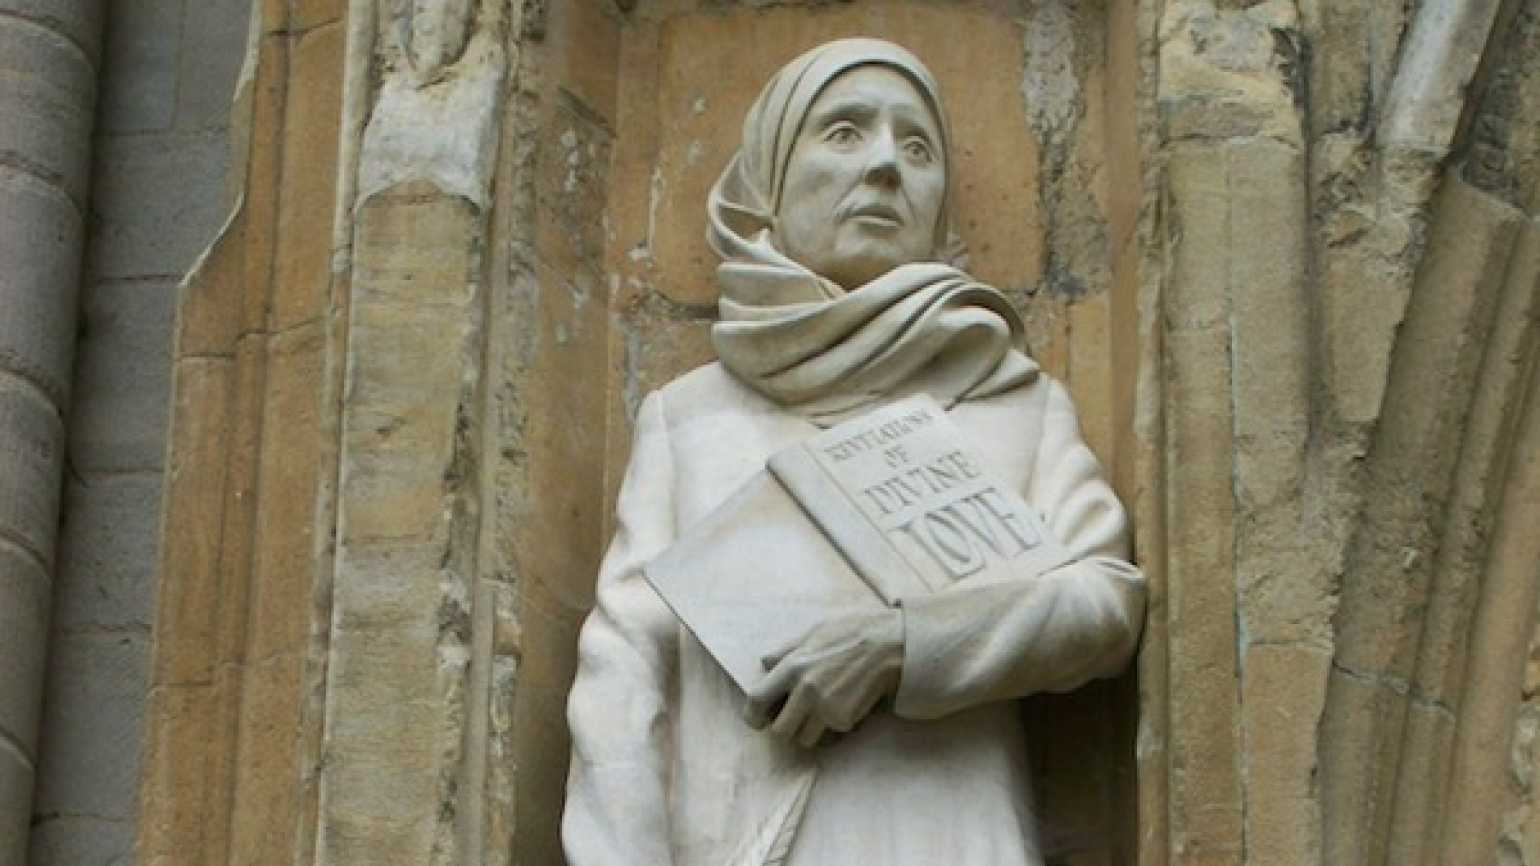 Statue of Julian of Norwich by David Holgate, west front, Norwich Cathedral. Image Wiikimedia, Tony Grist.